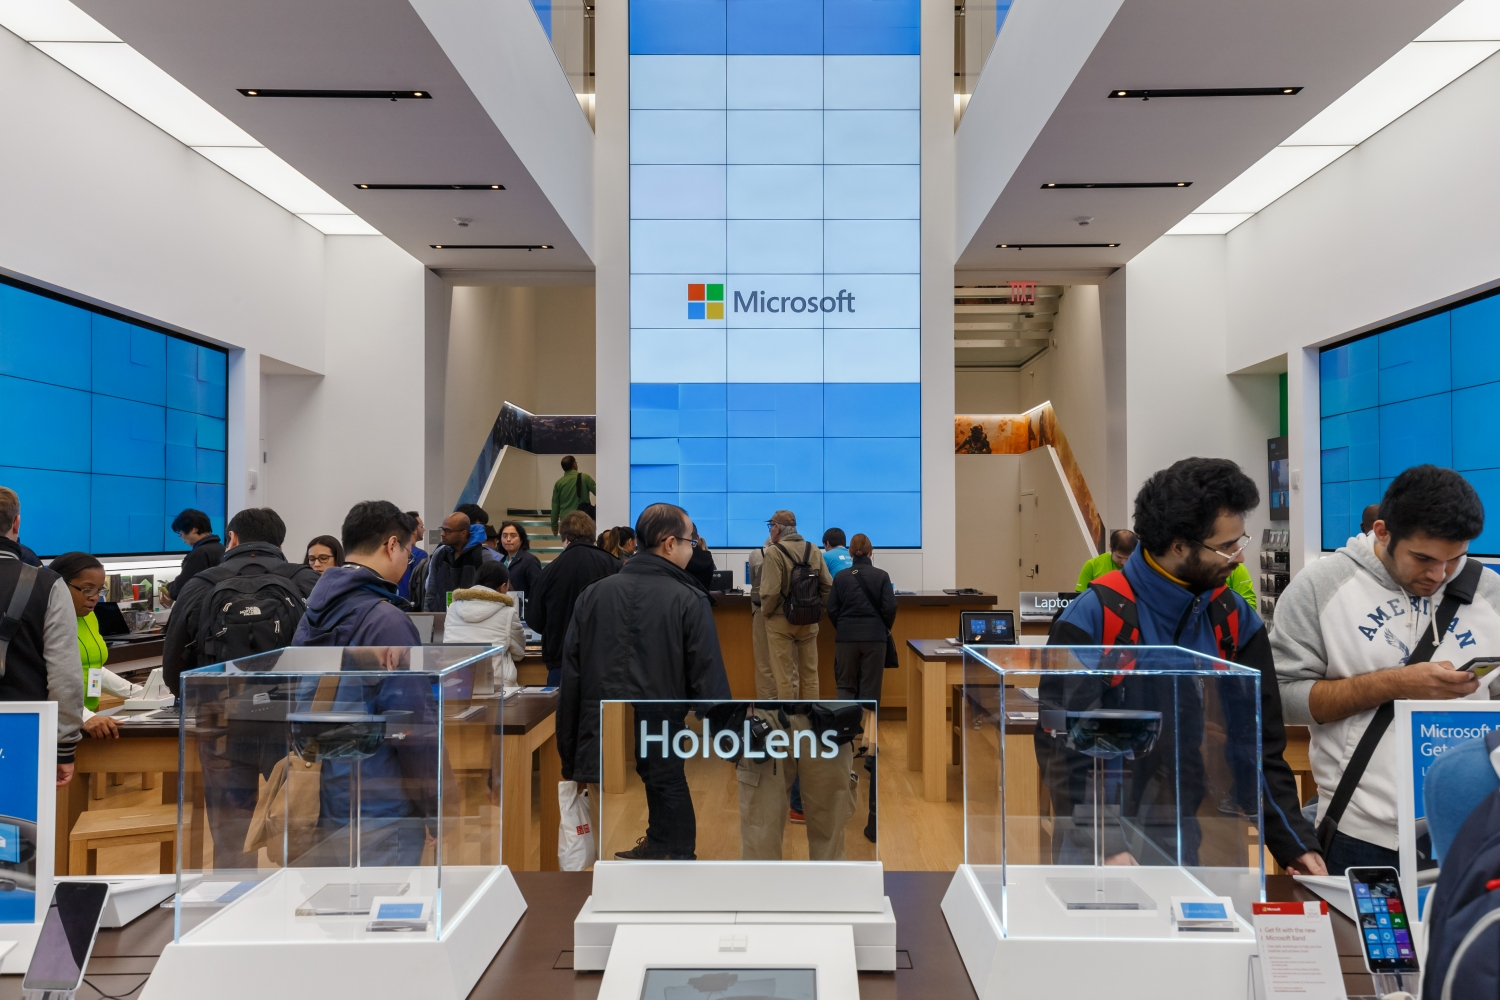 Microsoft is permanently closing all of its retail stores